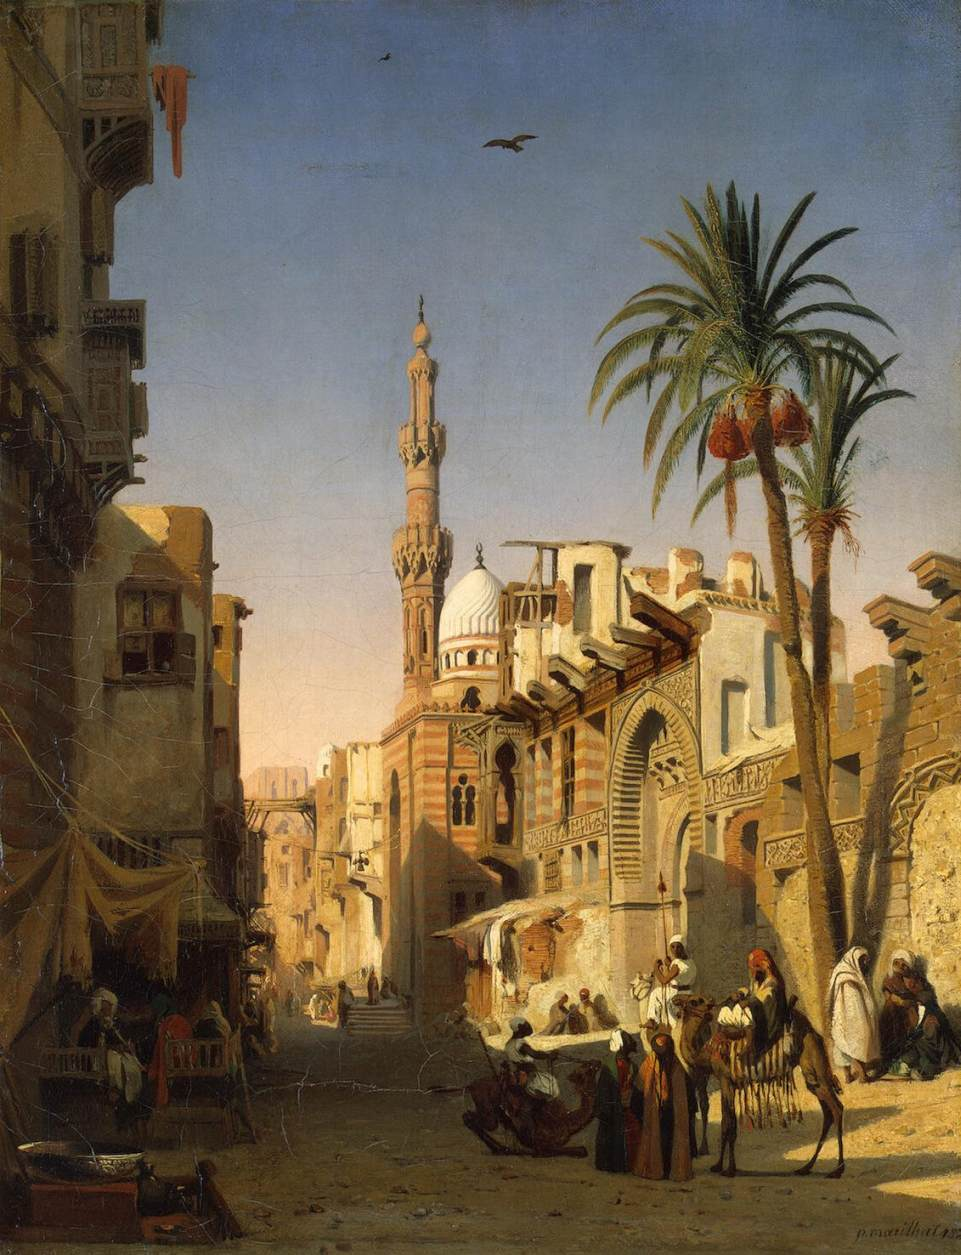 Figure 6. Prosper Marilhat, Ezbekiyah Street in Cairo, 1833, oil on canvas, 54 x 42 cm, The Hermitage, St. Petersburg.